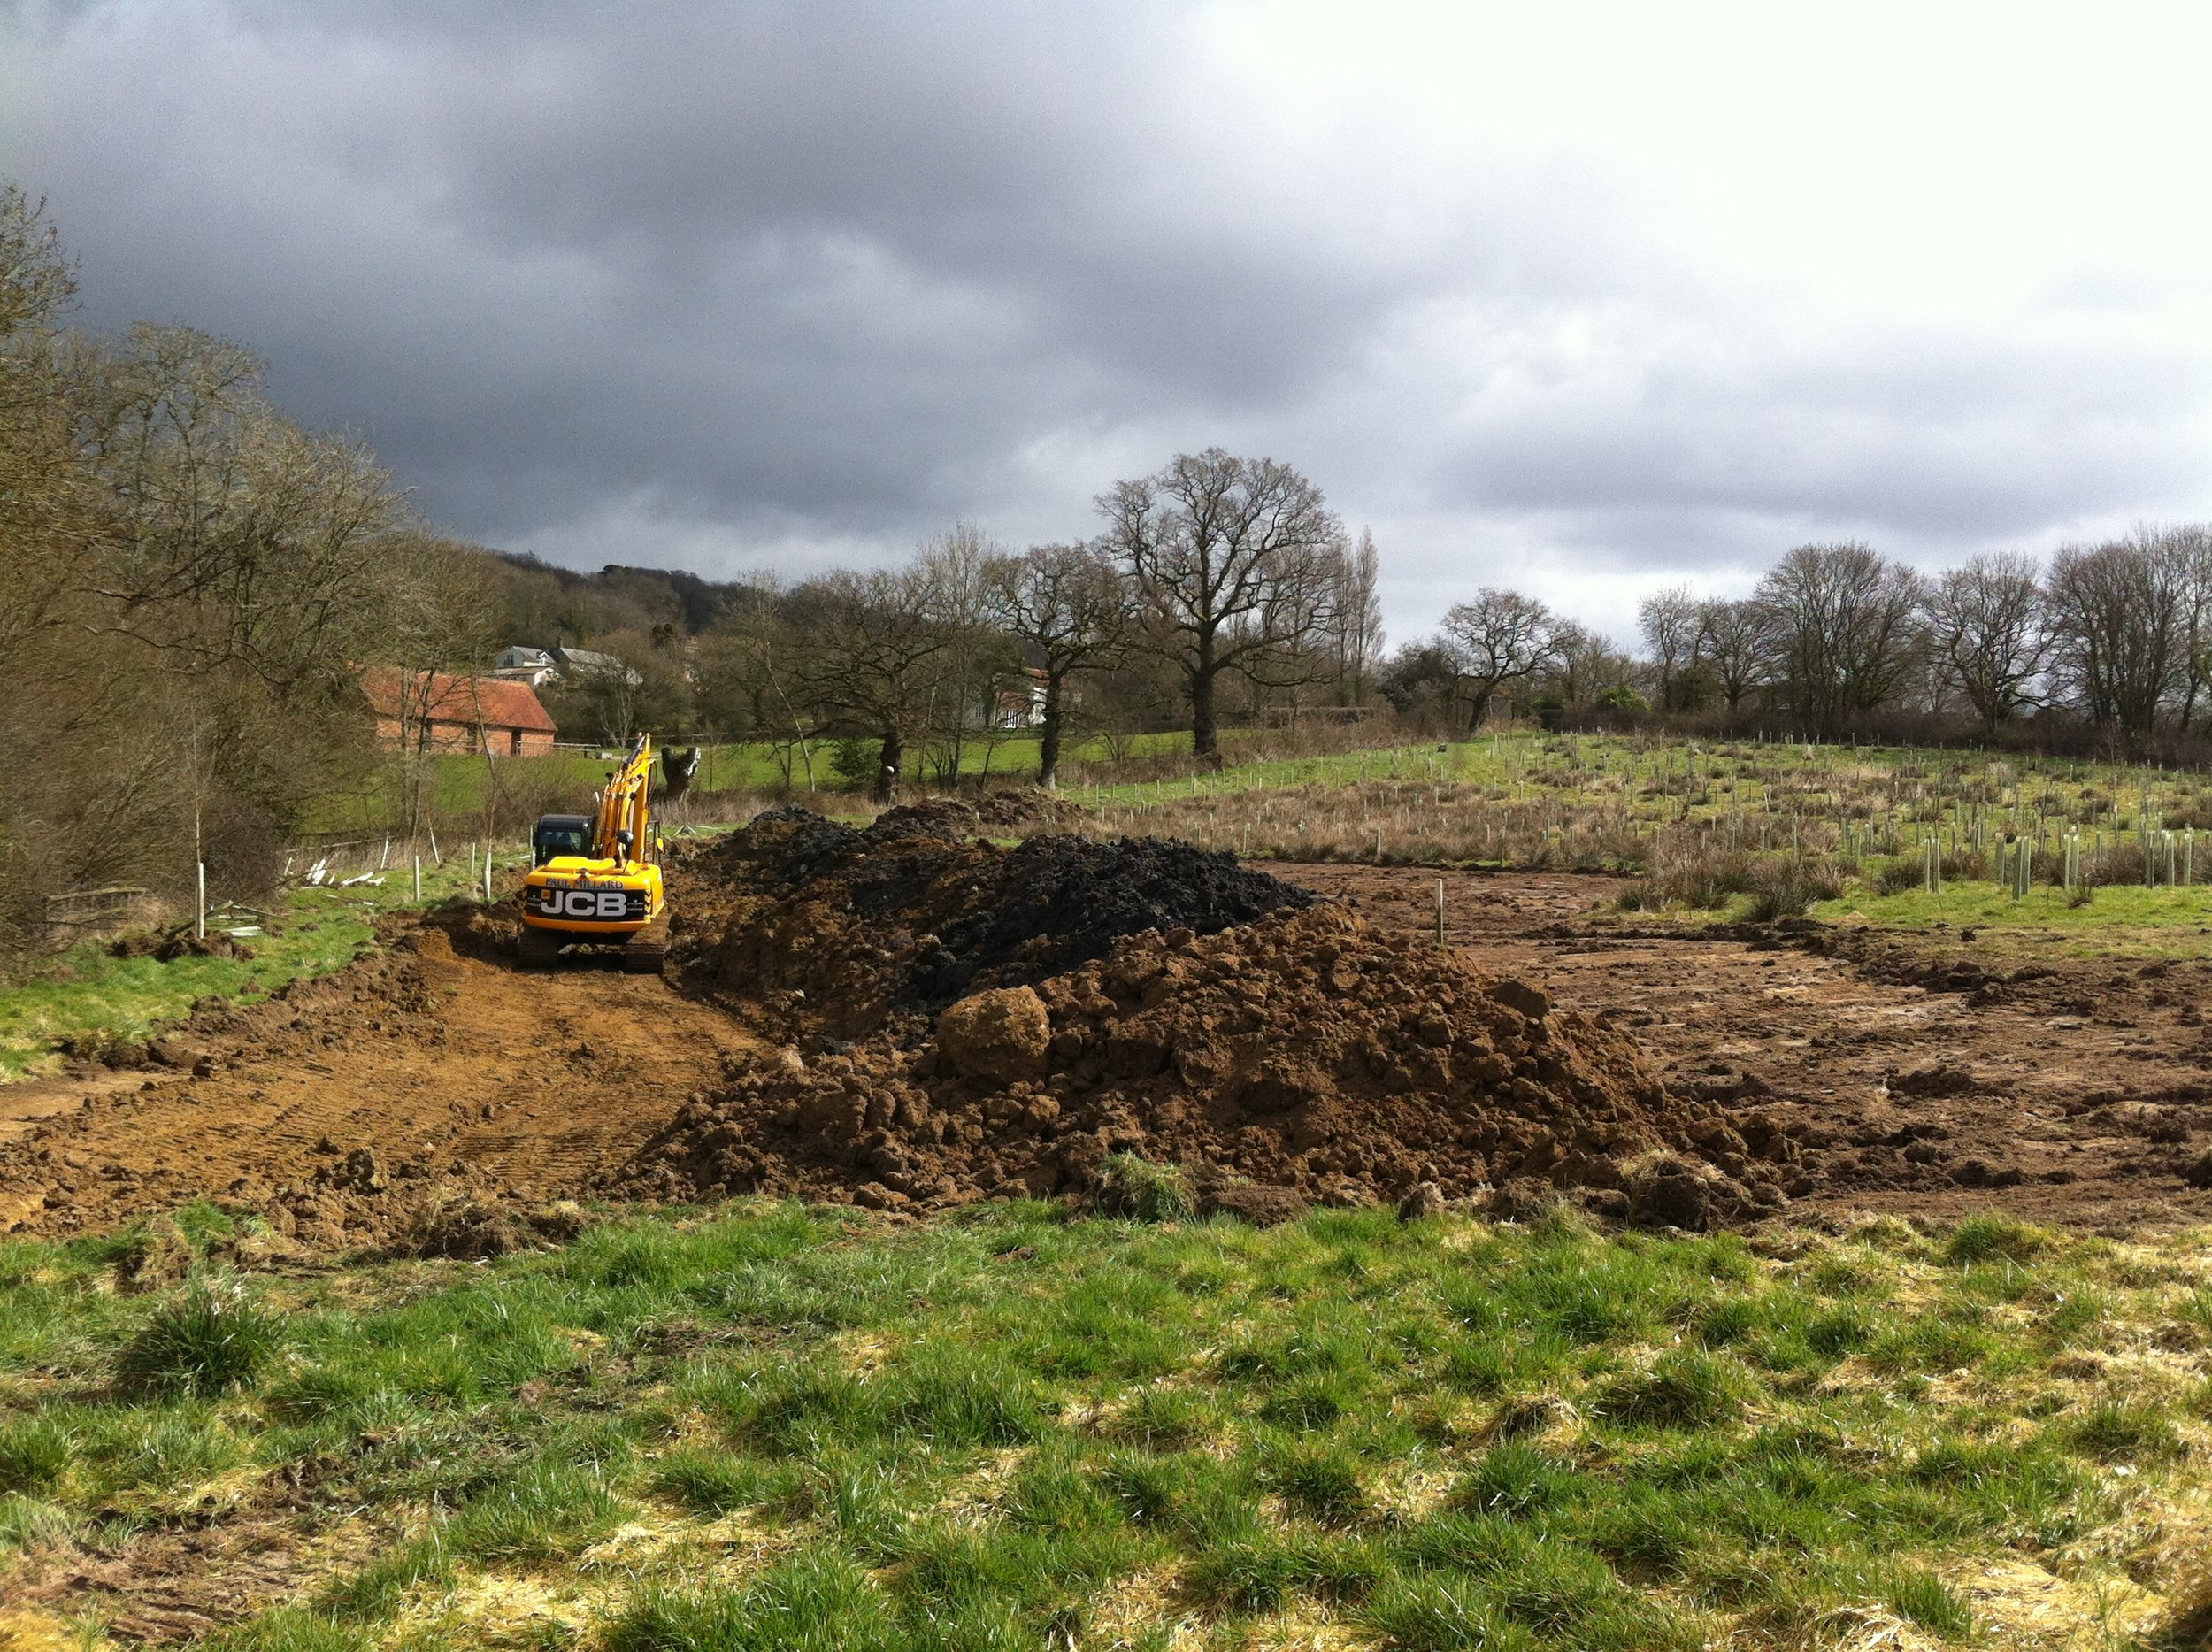 The pond being carved out of the land.....we started work in early spring 2015, construction was completed by mid-summer 2016 and it was full by January 2nd 2016.  This work, which took about 6 weeks, was done by Paul Millard Construction - Paul and Dan (the expert digger man) were amazing, bringing there expertise to this project...and look at the result.